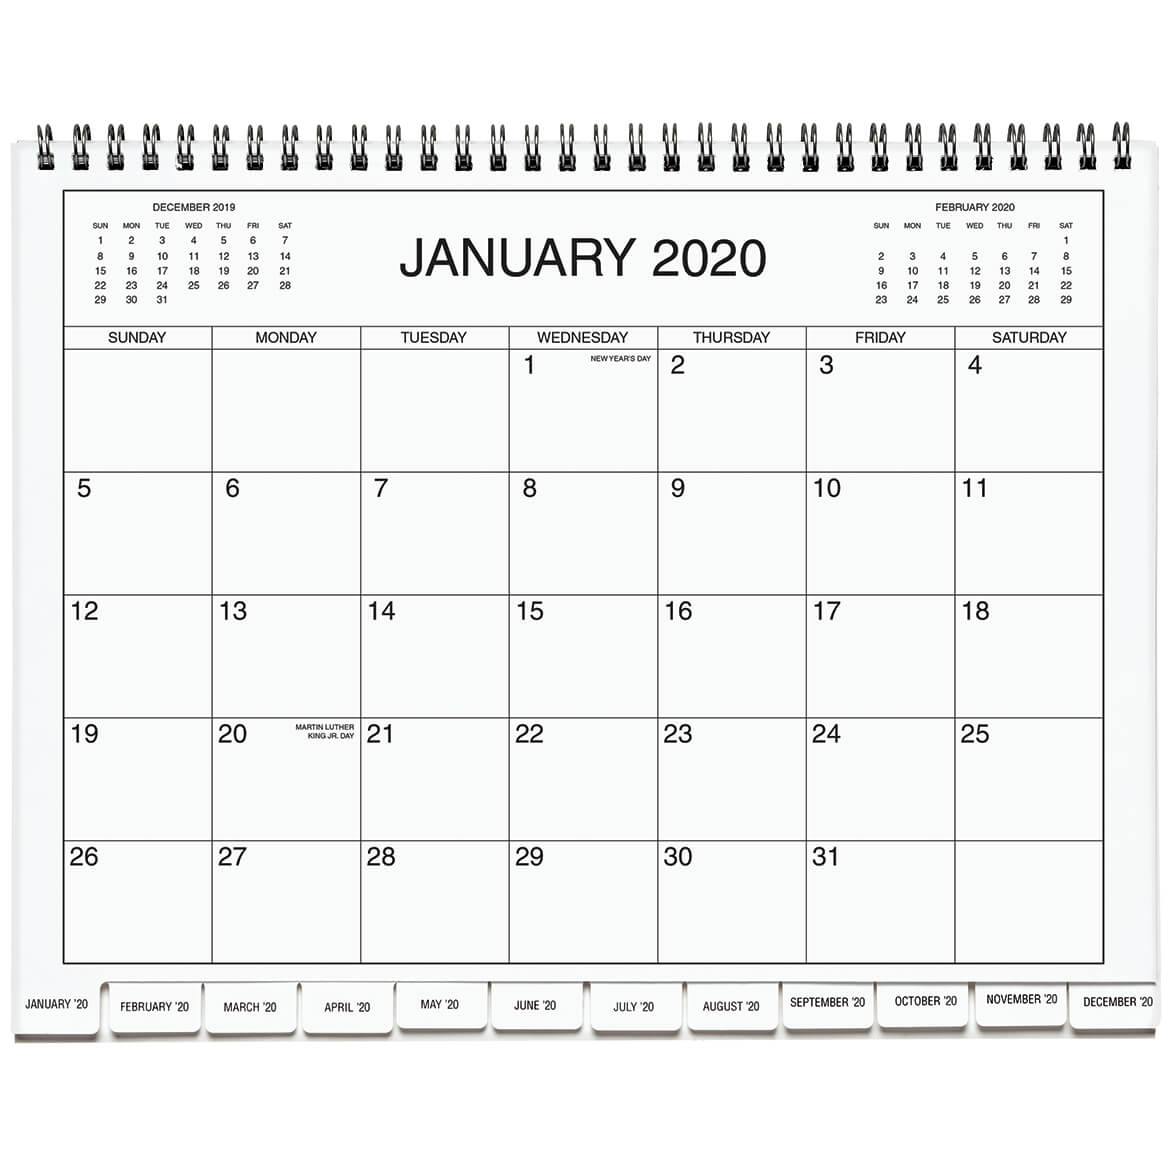 3-Year Calendar Planner, 2020-2022 Monthly Schedule throughout Retail Calendar 2022 4-5-4 Explained